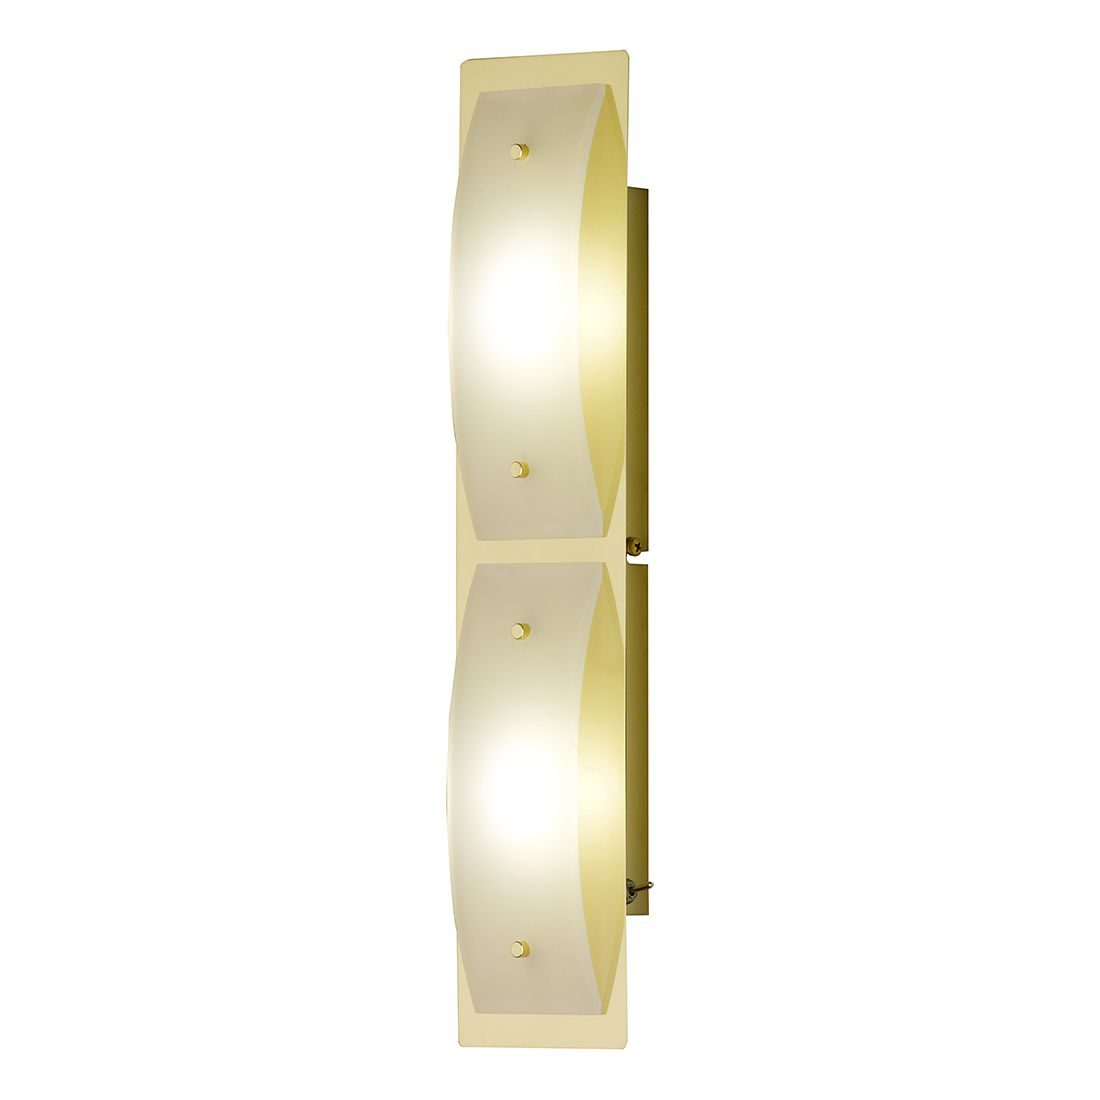 LED-Wandleuchte Liana Metall Gold ● 2-flammig- Honsel A+